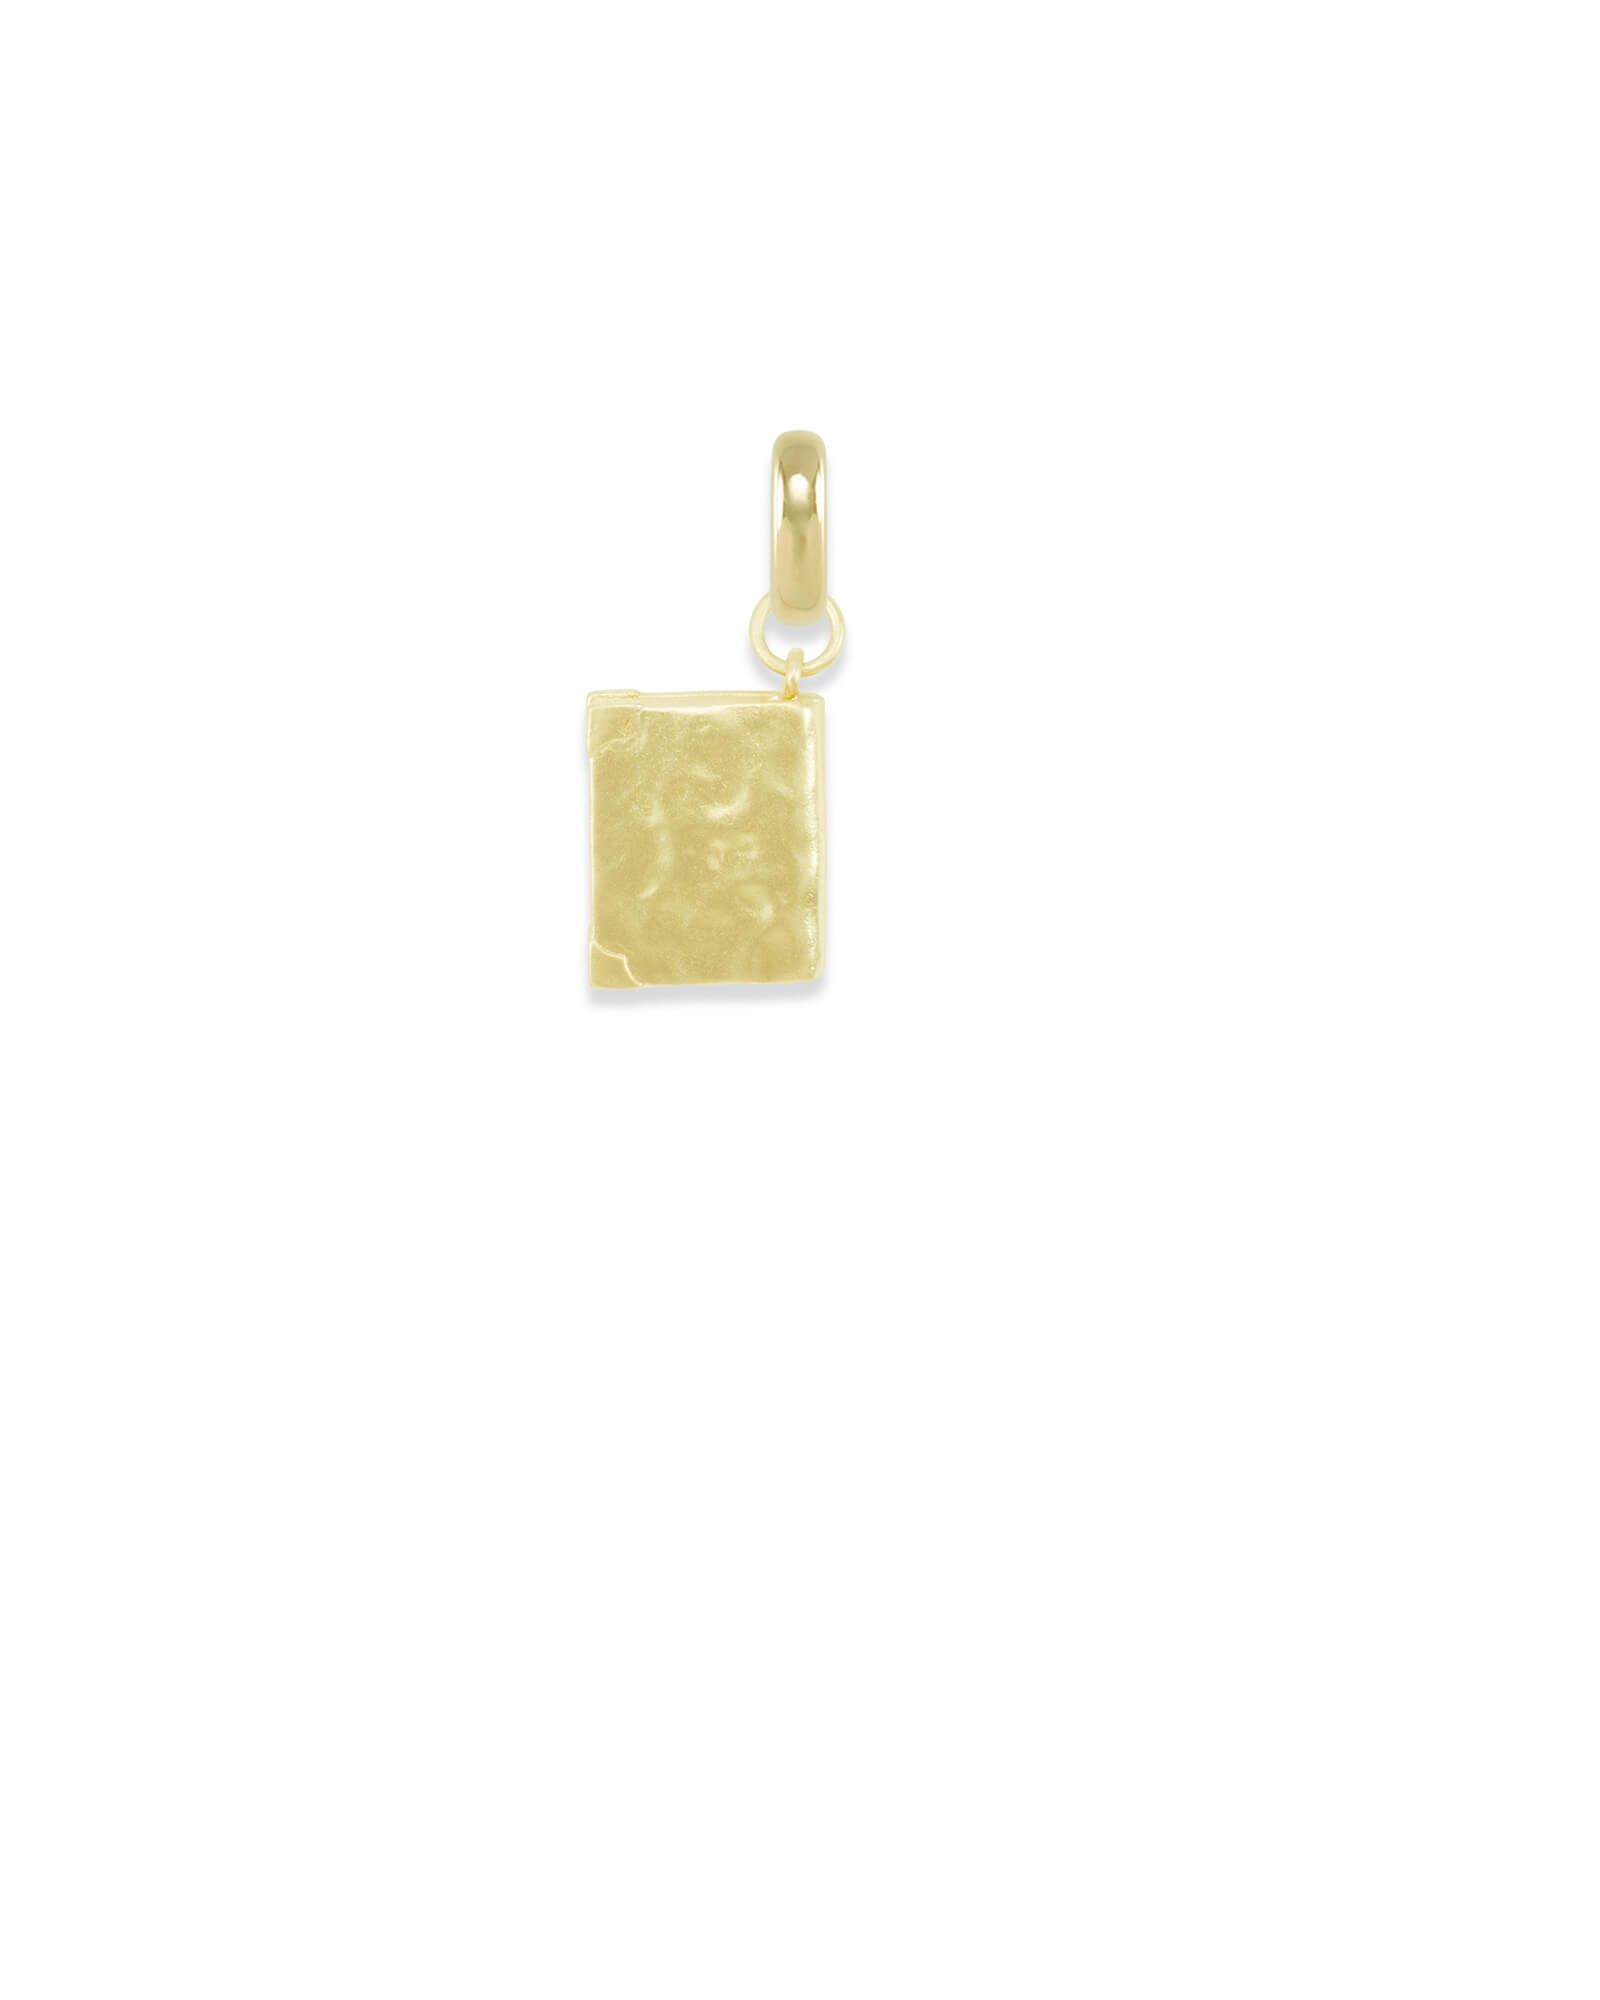 Literacy Charm in Gold